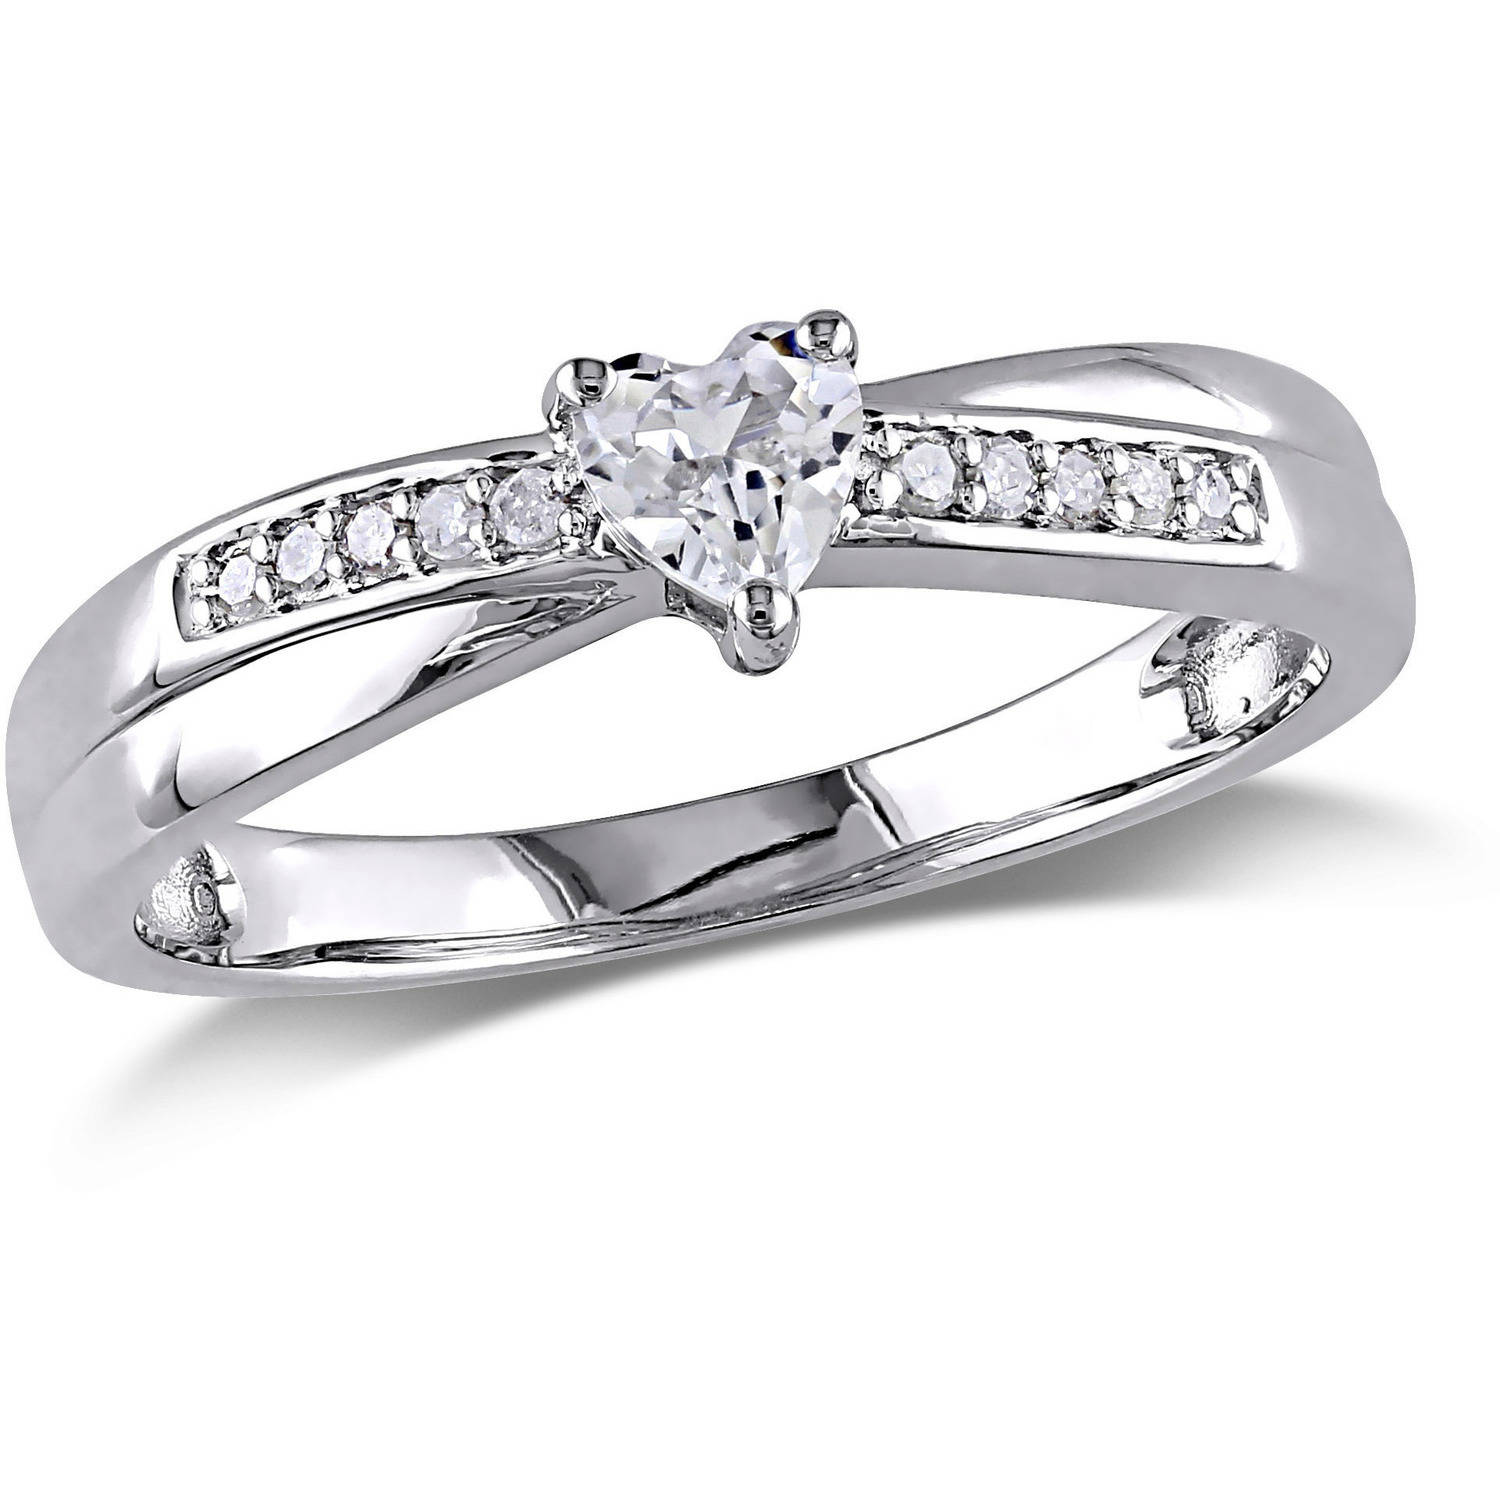 Miabella 1/4 Carat T.G.W. Created White Sapphire and Diamond-Accent  Sterling Silver Heart